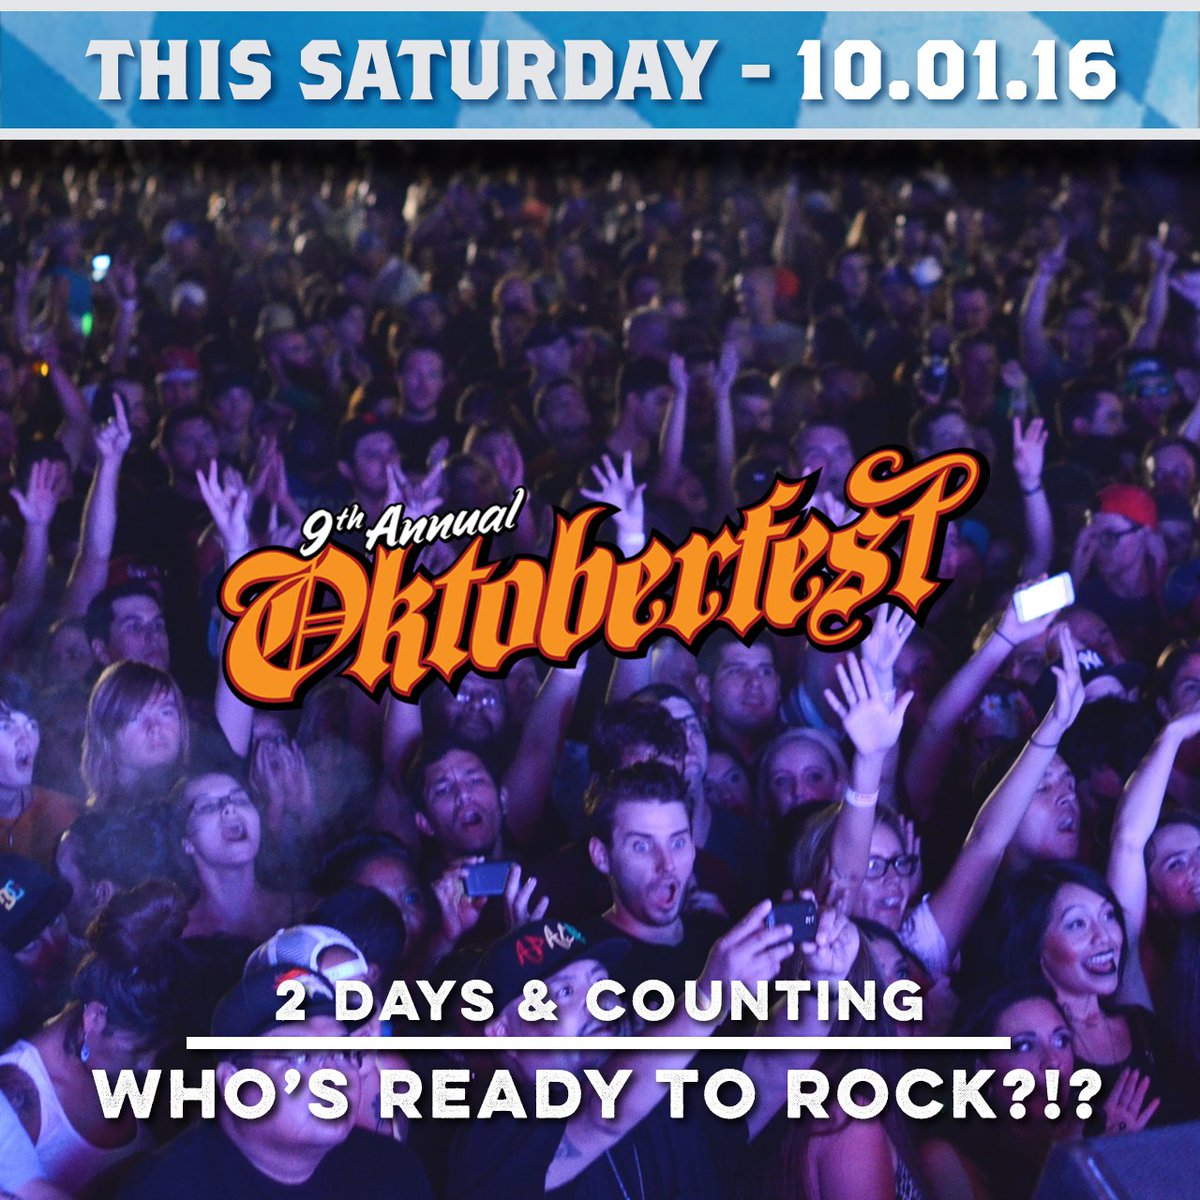 Who's ready for @ReelBigFish, @azpeacemakers + CRAFT BEER! 2 days until @STBOktoberfest .... https://t.co/0ZkbXoXyJU